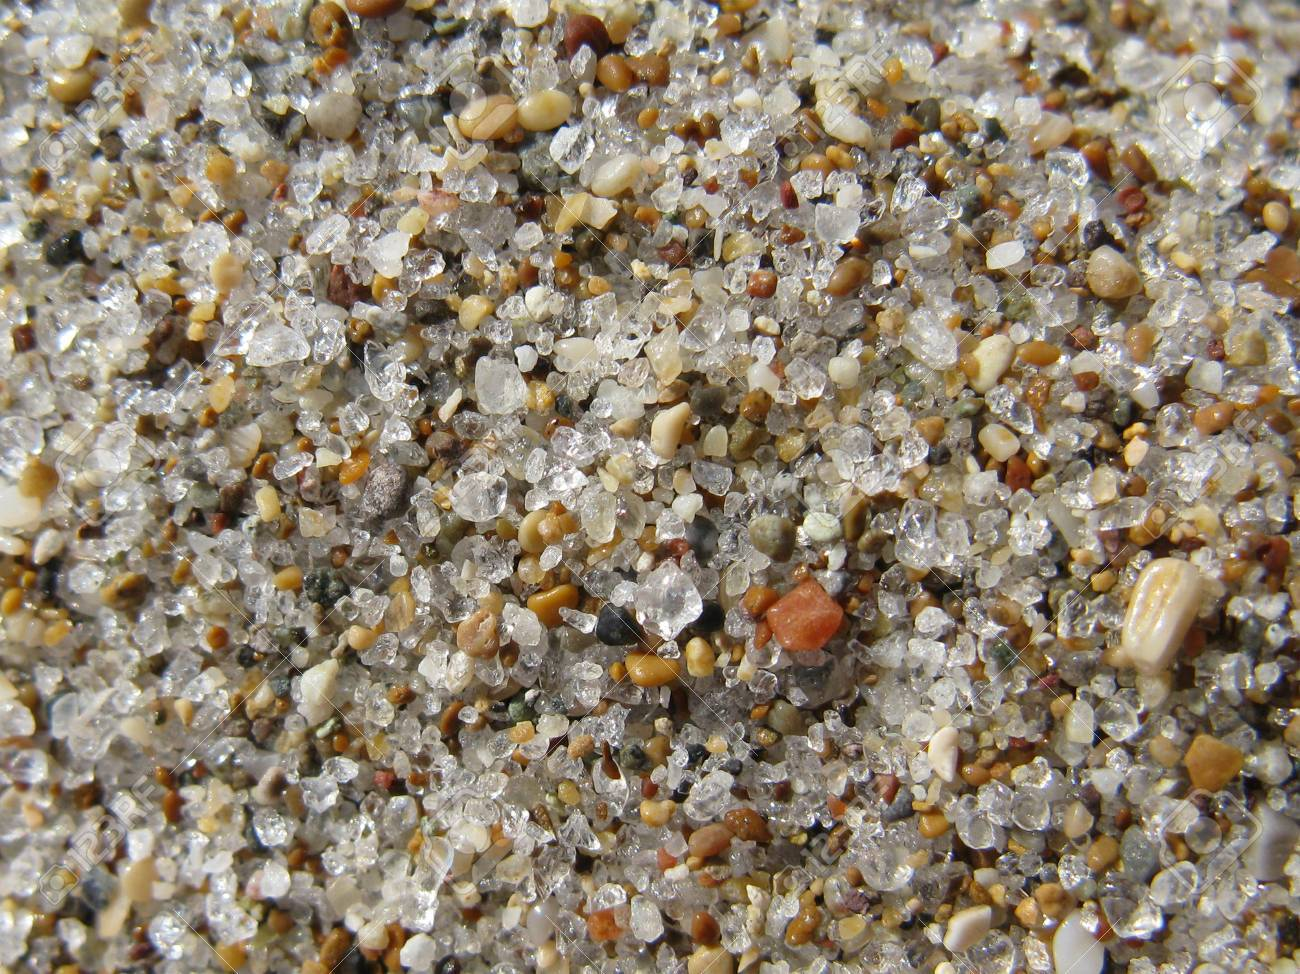 small grains of colored sand on a beach Stock Photo - 16450180